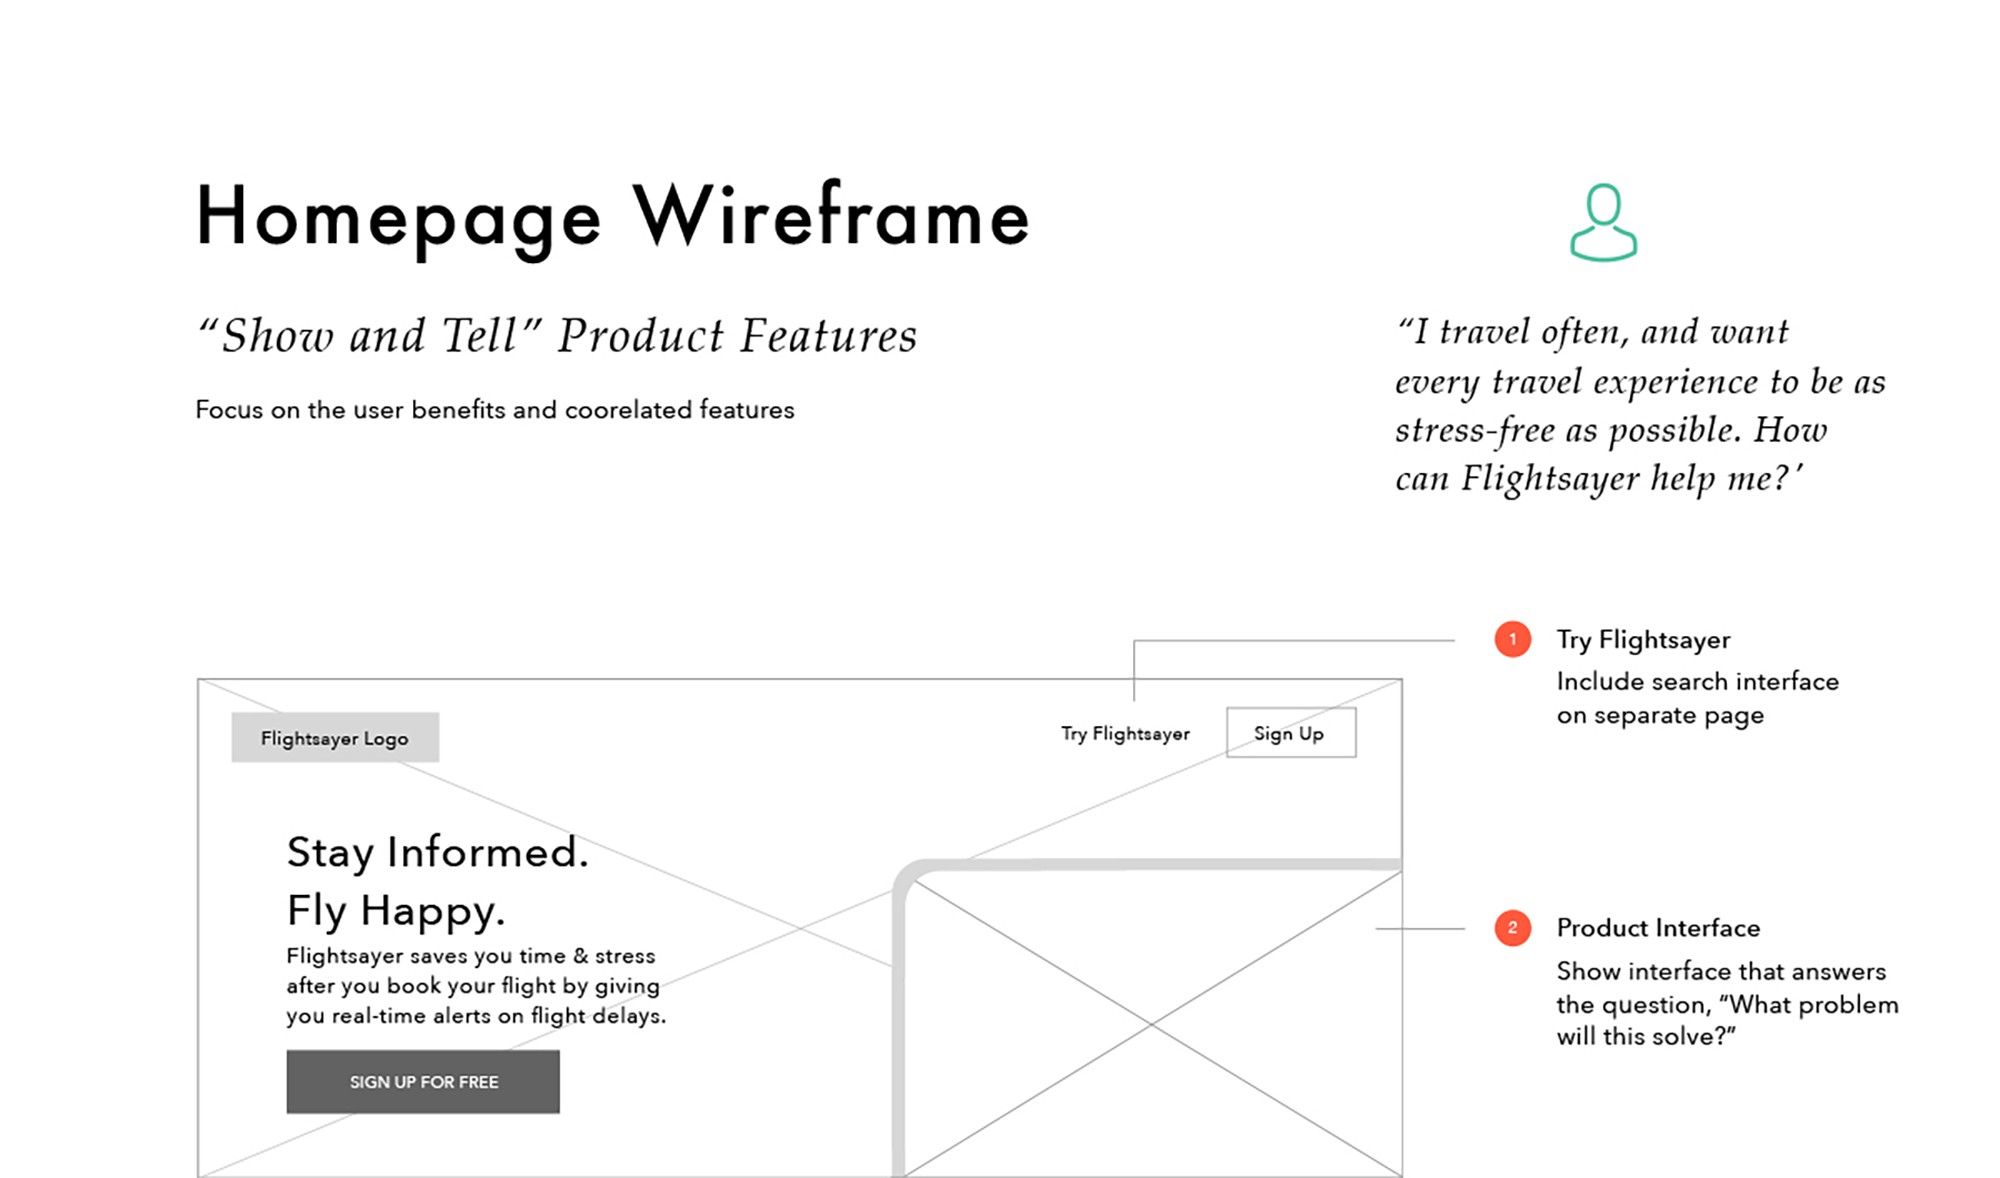 Wireframe for Flightsayer website